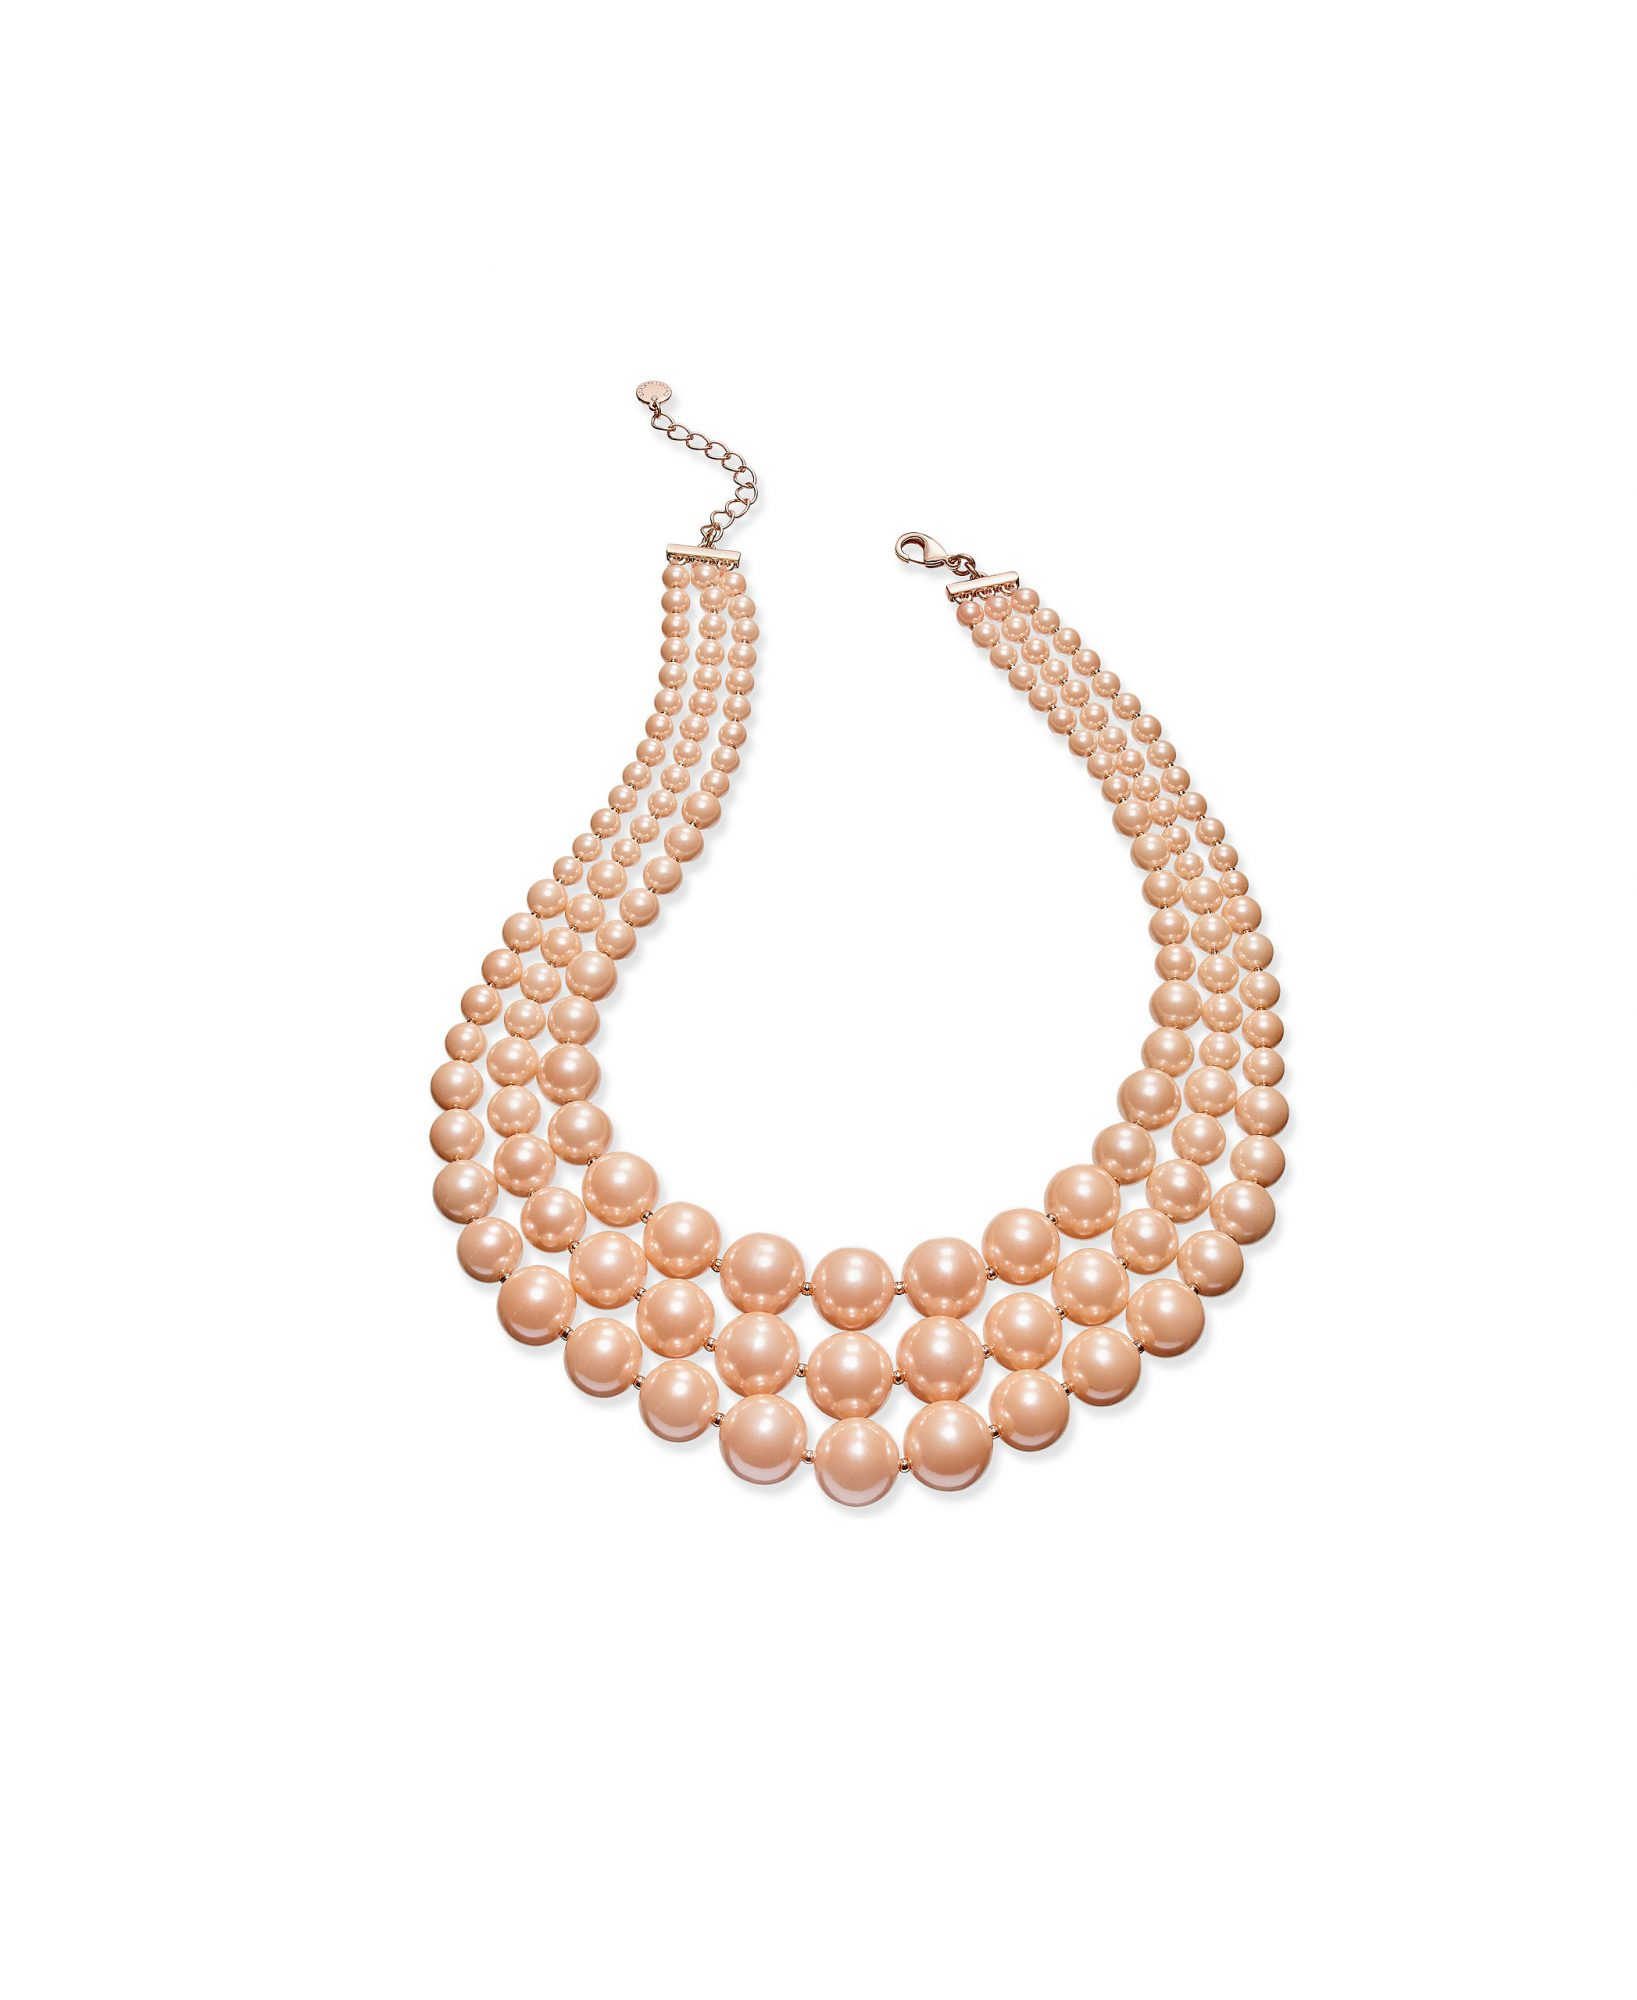 Charter Club Imitation Pearl Three-Row Collar Necklace